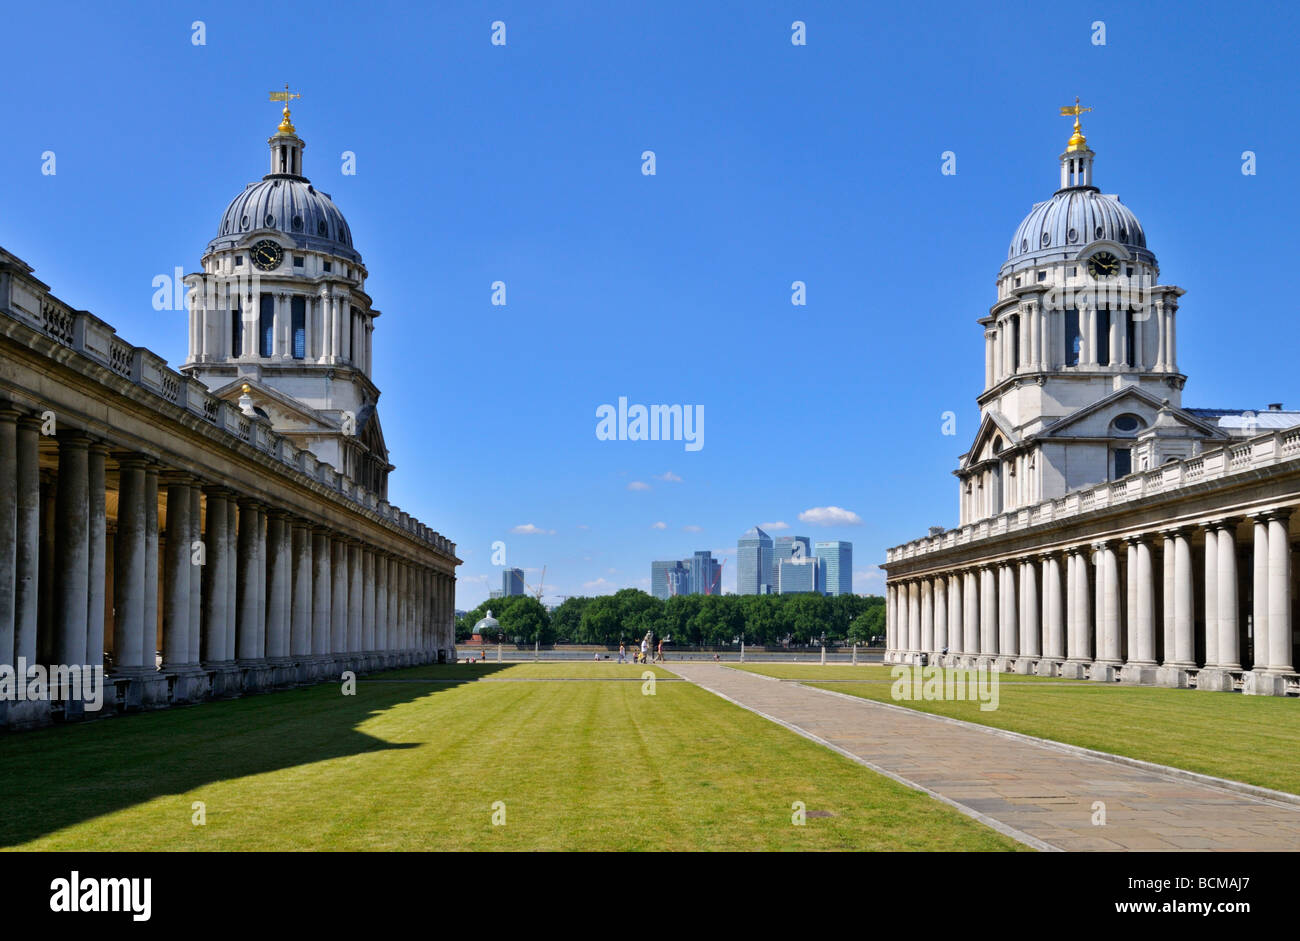 Old Royal Naval College Greenwich London United Kingdom - Stock Image